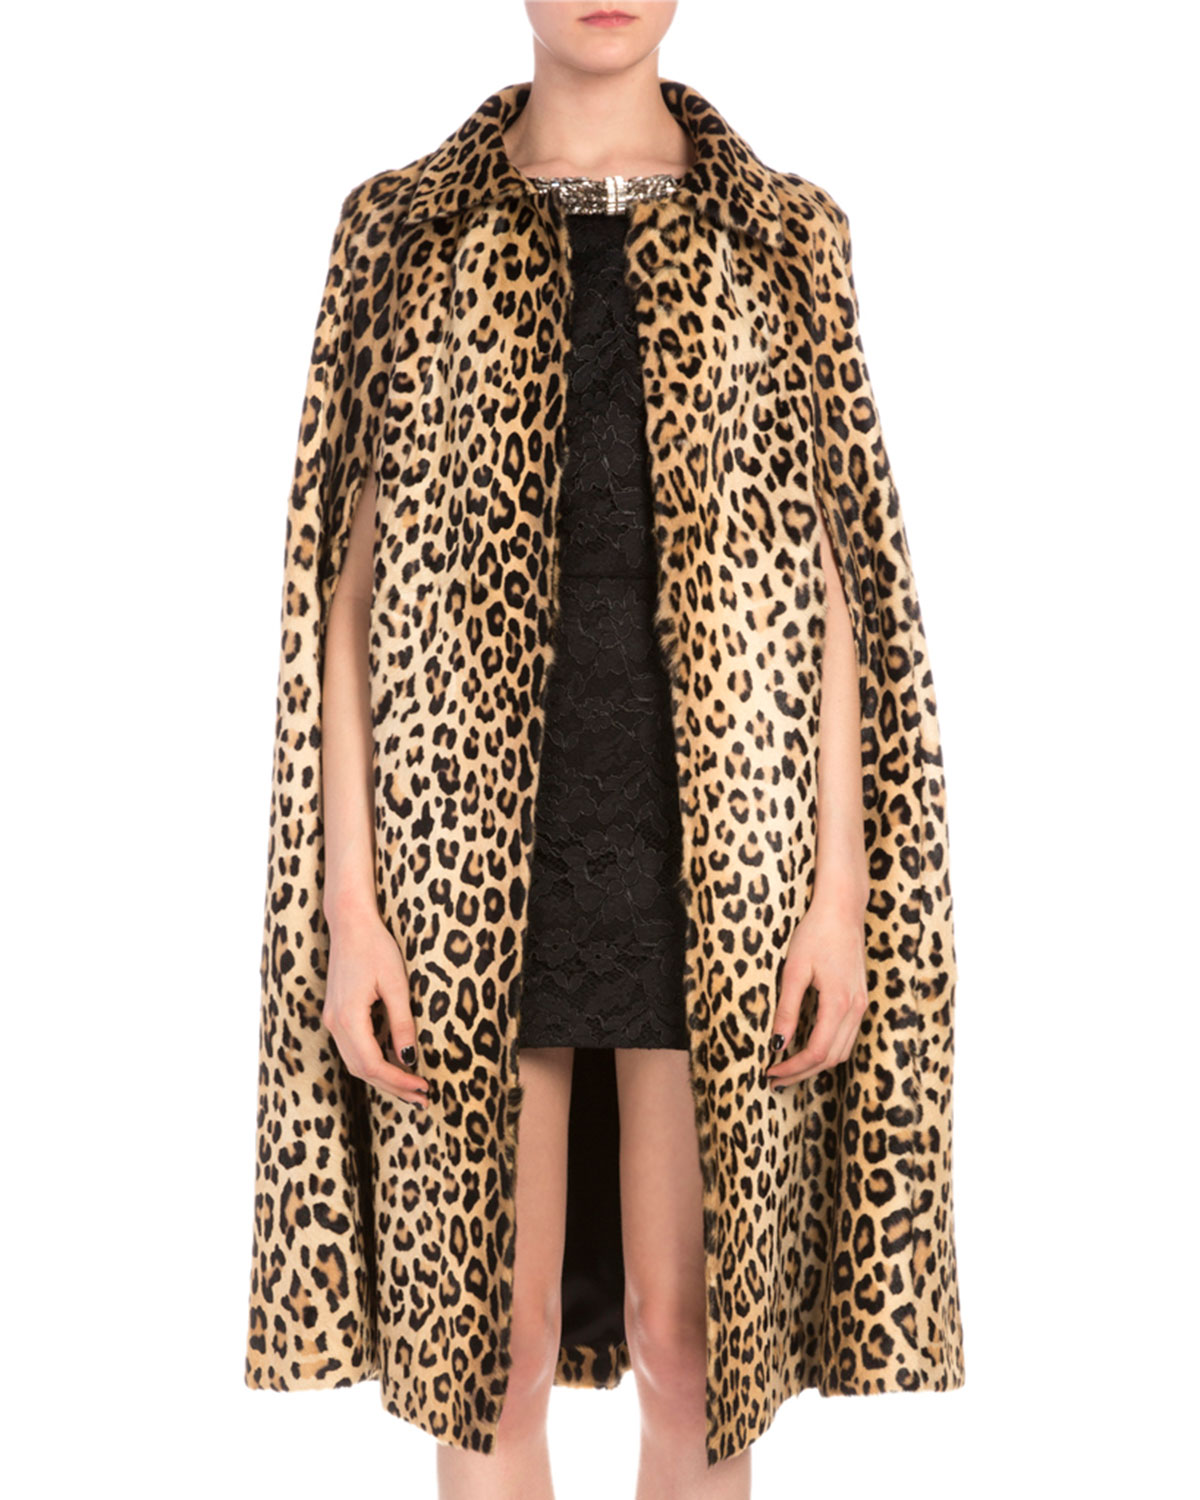 Leopard-Print Goat Hair Coat, Women's, Size: 34, Yellow/Black - Saint Laurent